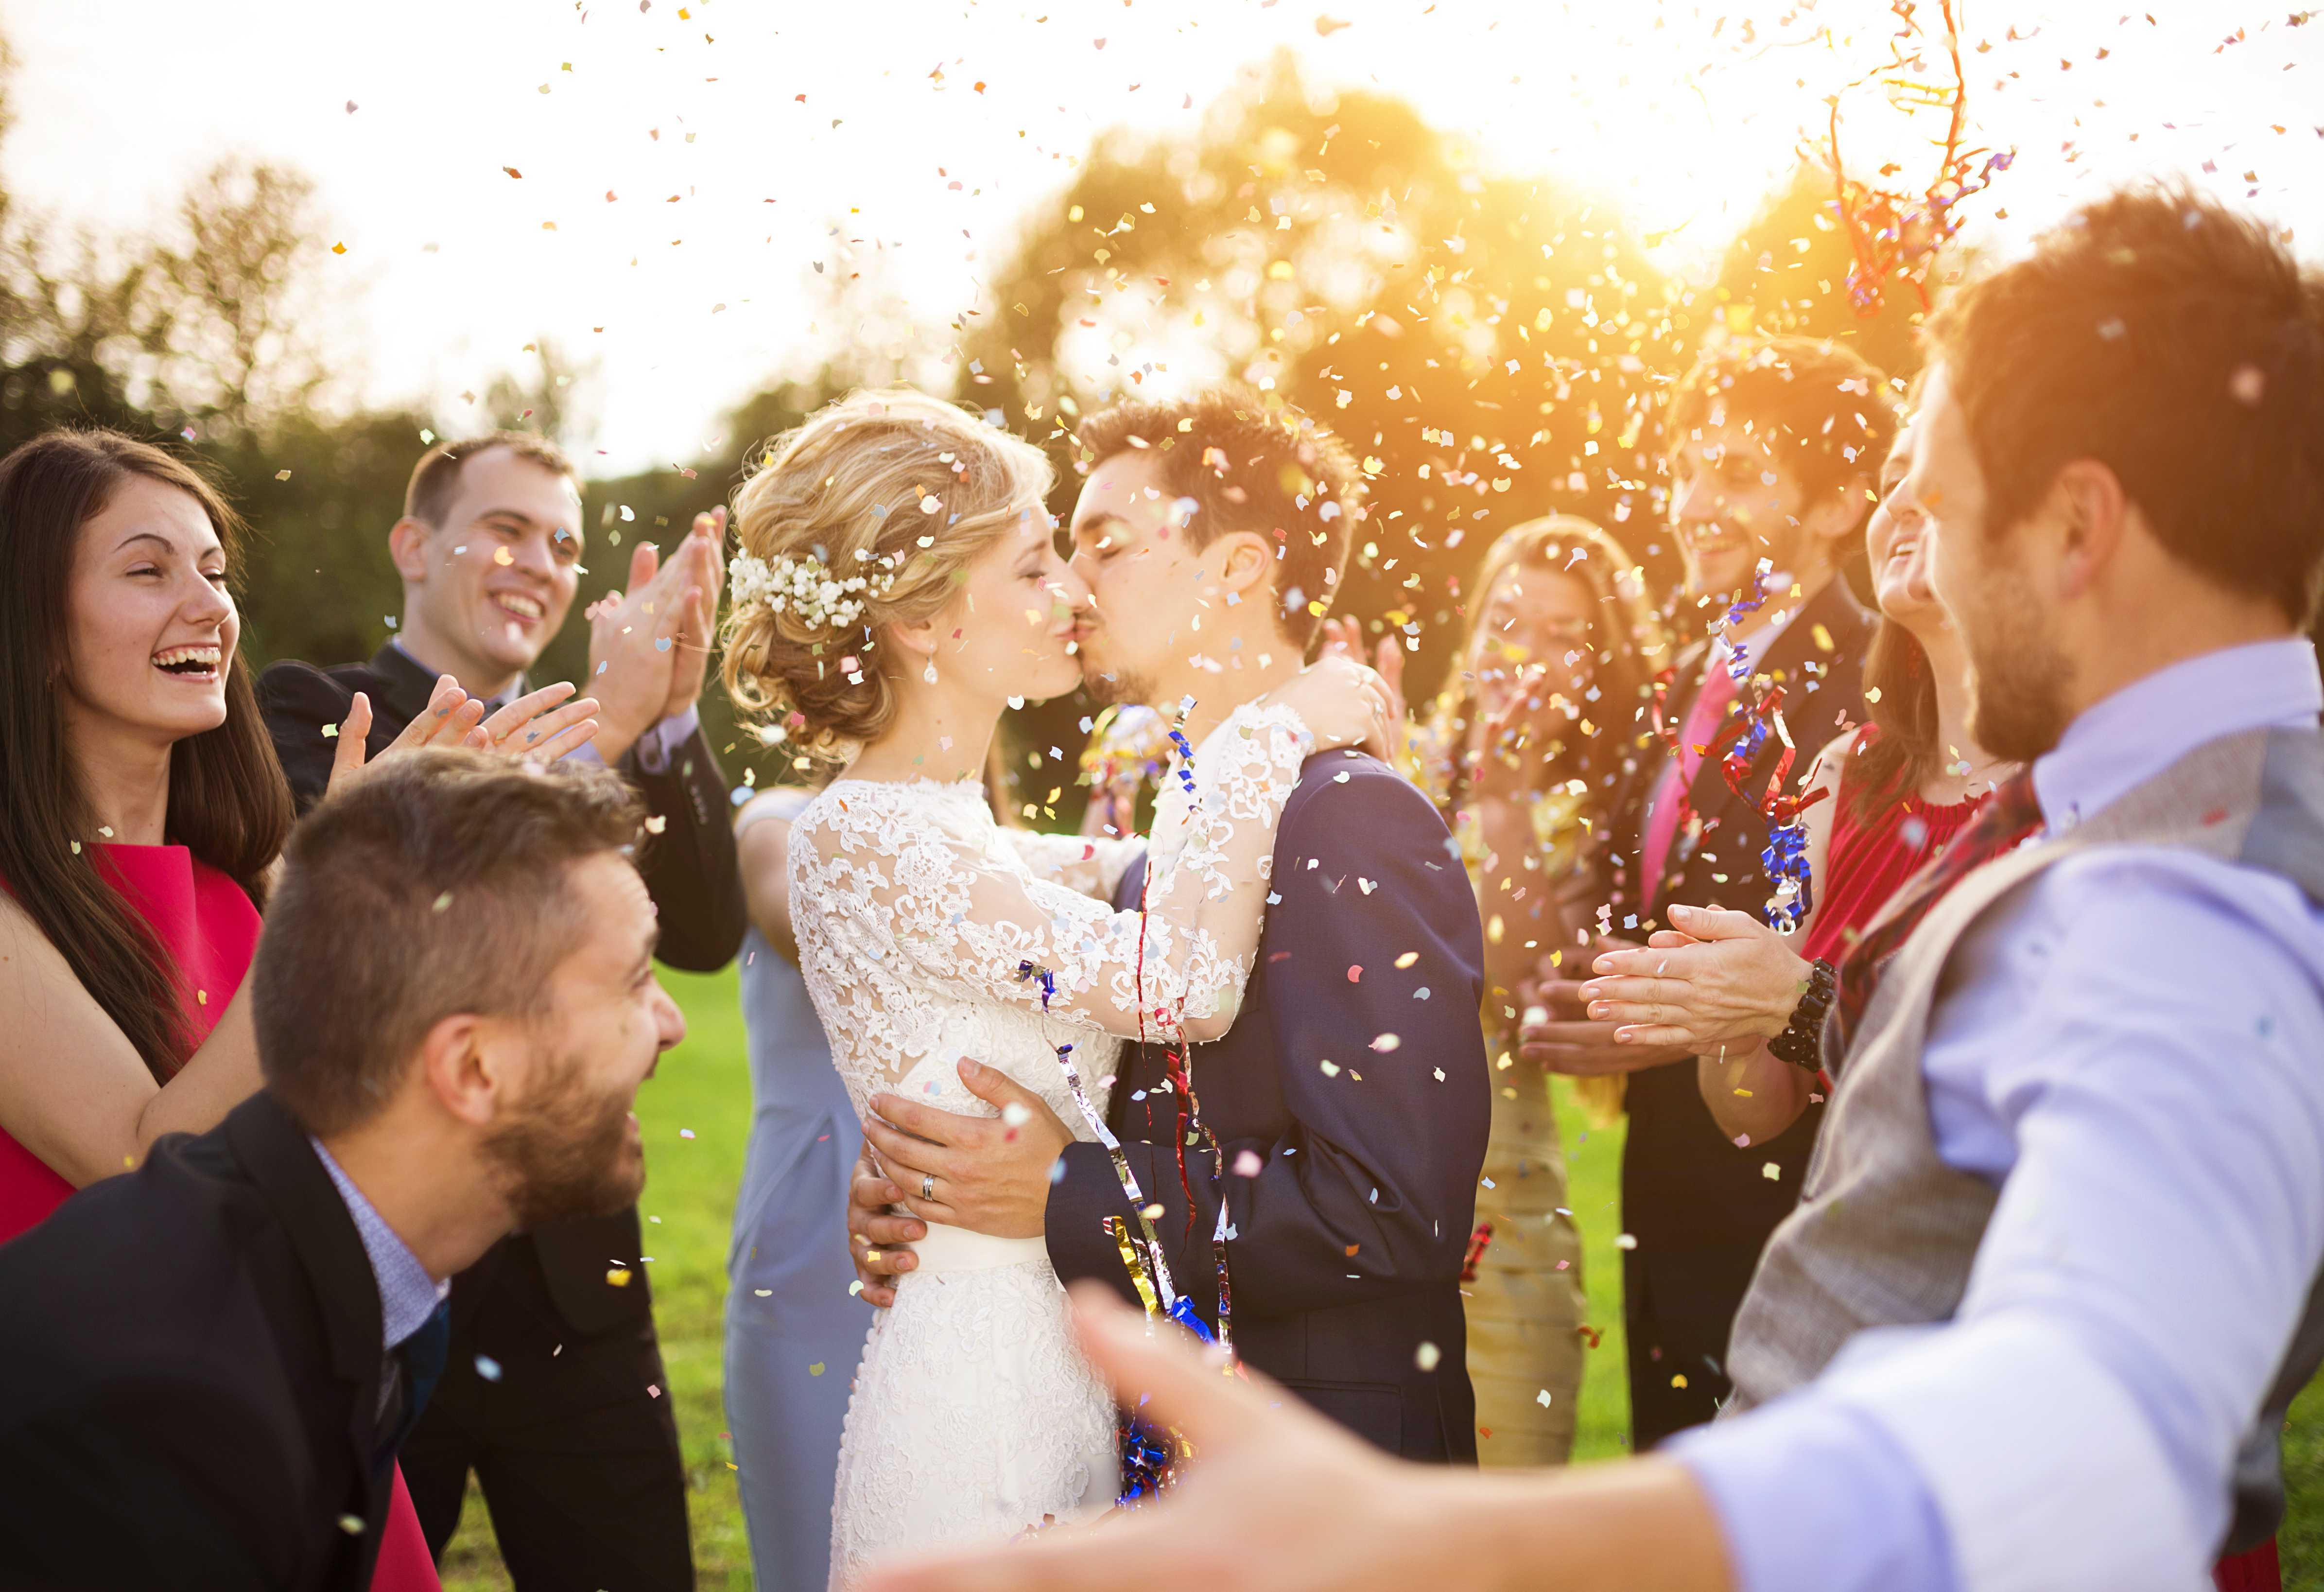 The One Wedding Photo You Shouldn't Forget